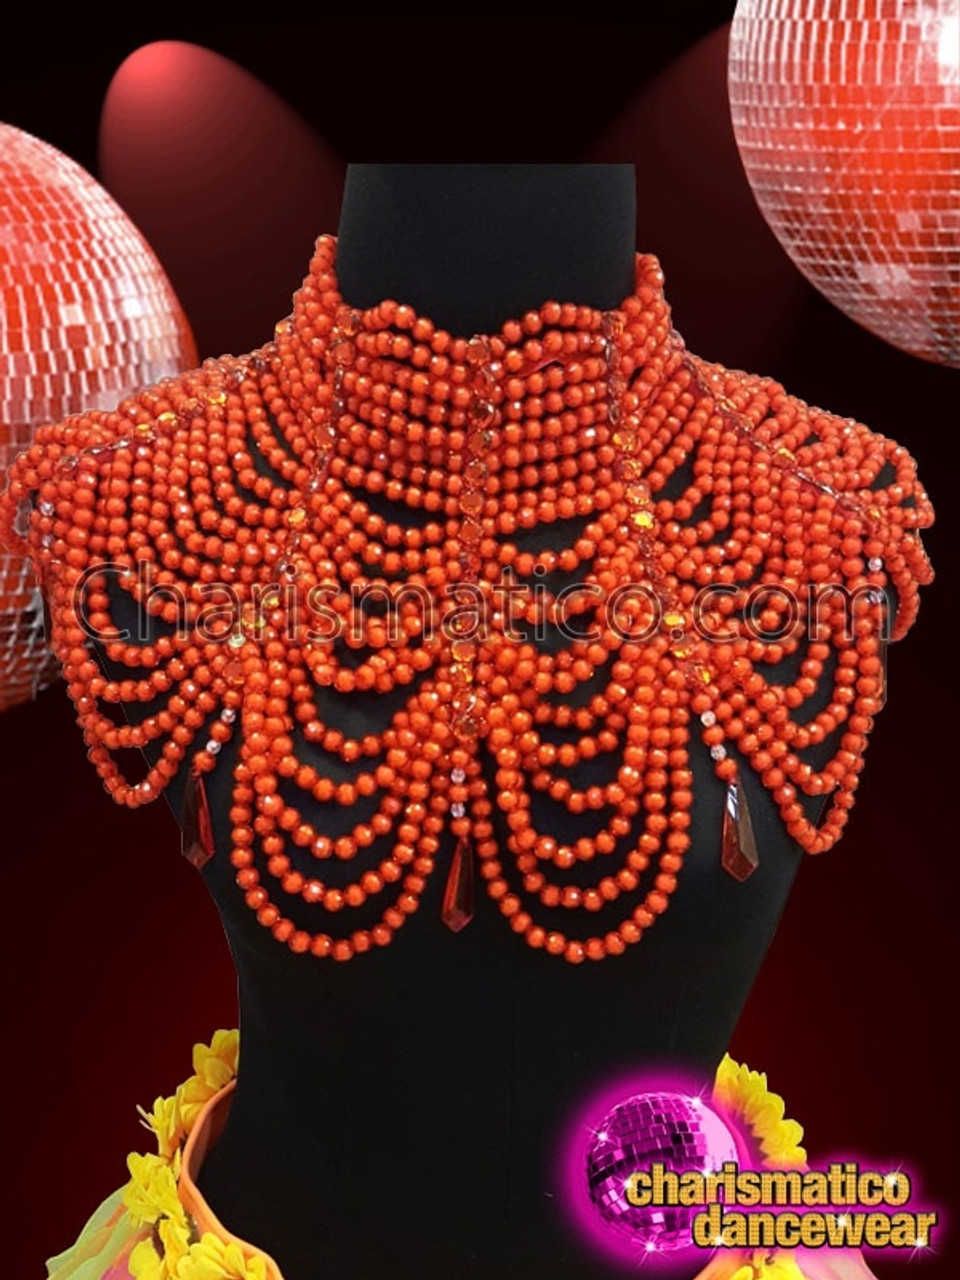 dadabb25f3108 CHARISMATICO Red Multiple Chain Diva High Collar Necklace With Diamonds